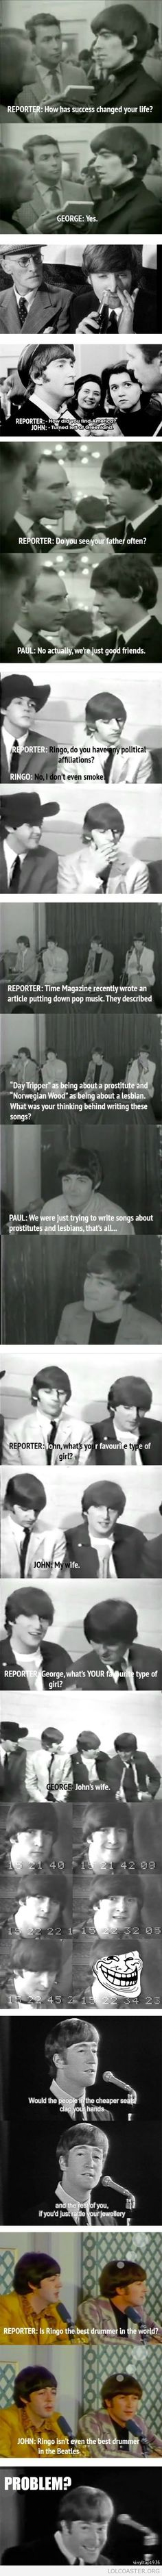 They were the original sass masters LETS HAVE A ROUND OF APPLAUSE FOR THE BEATLES *Claps*